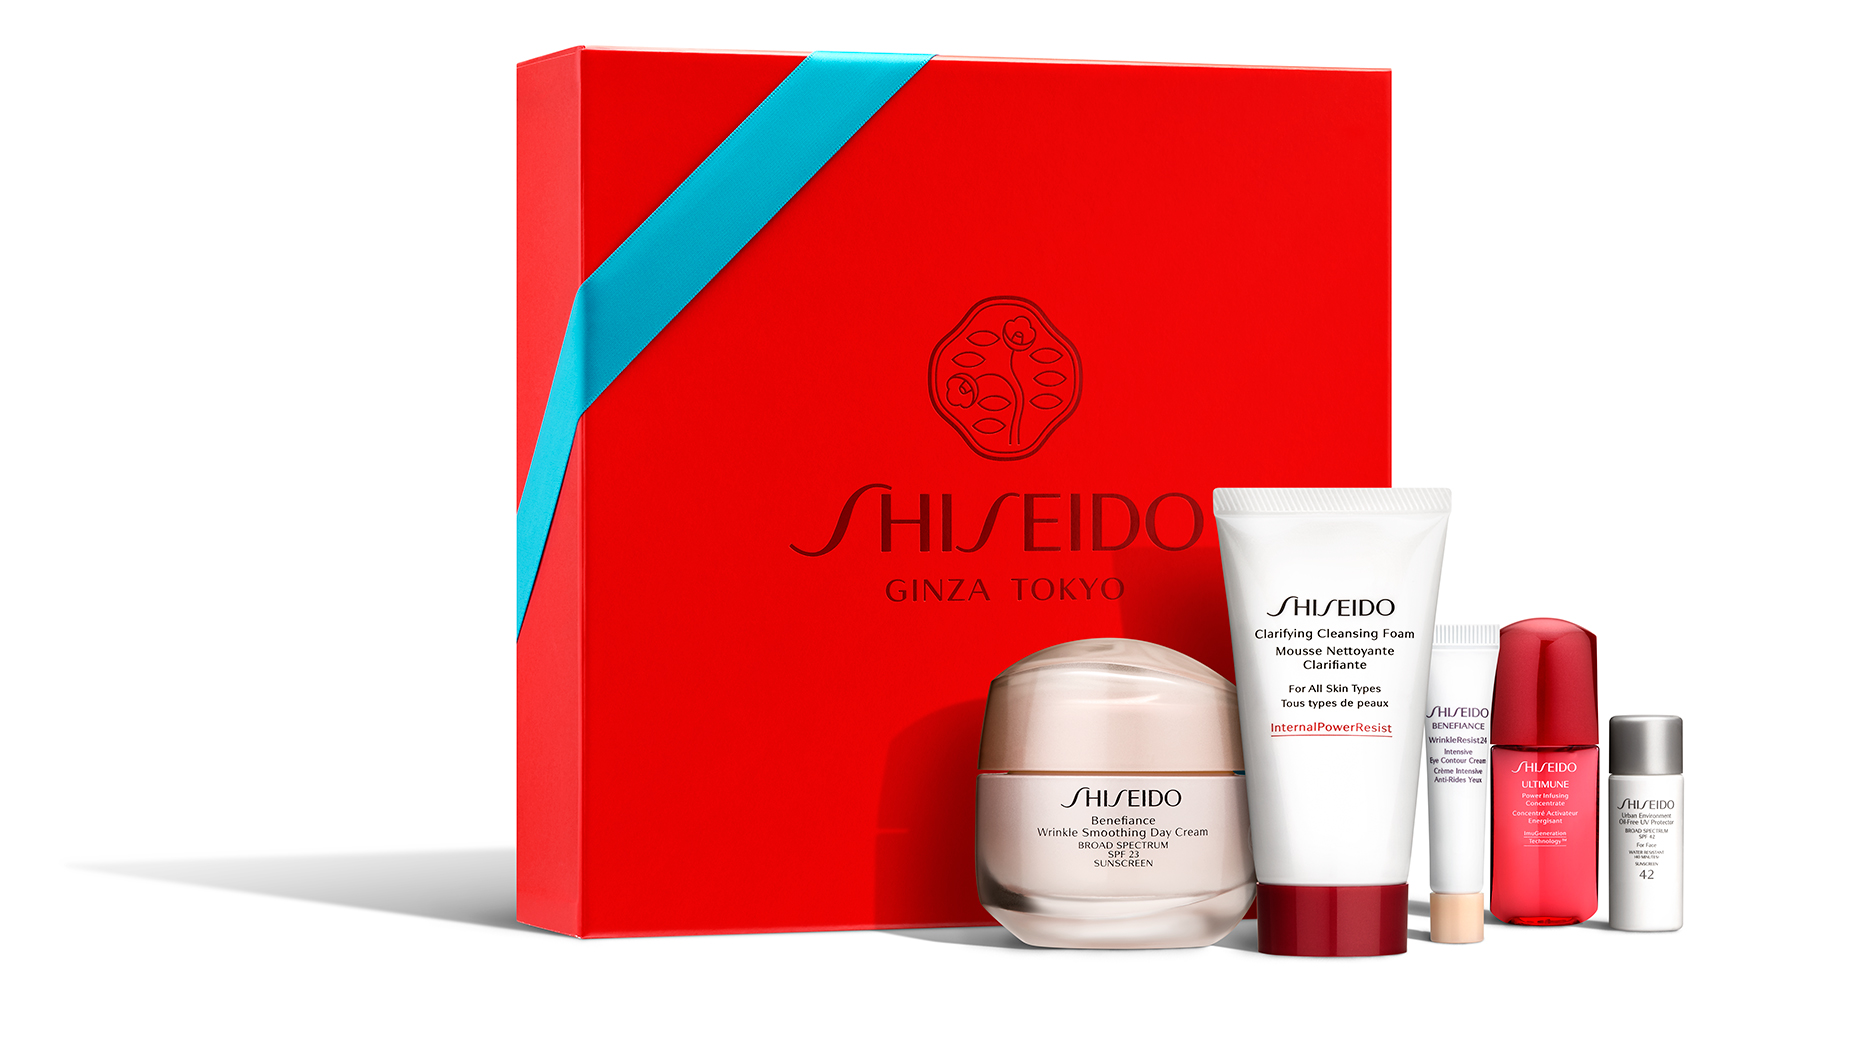 Red Productions Product & Still Life Photography Shiseido Skincare Gift Set